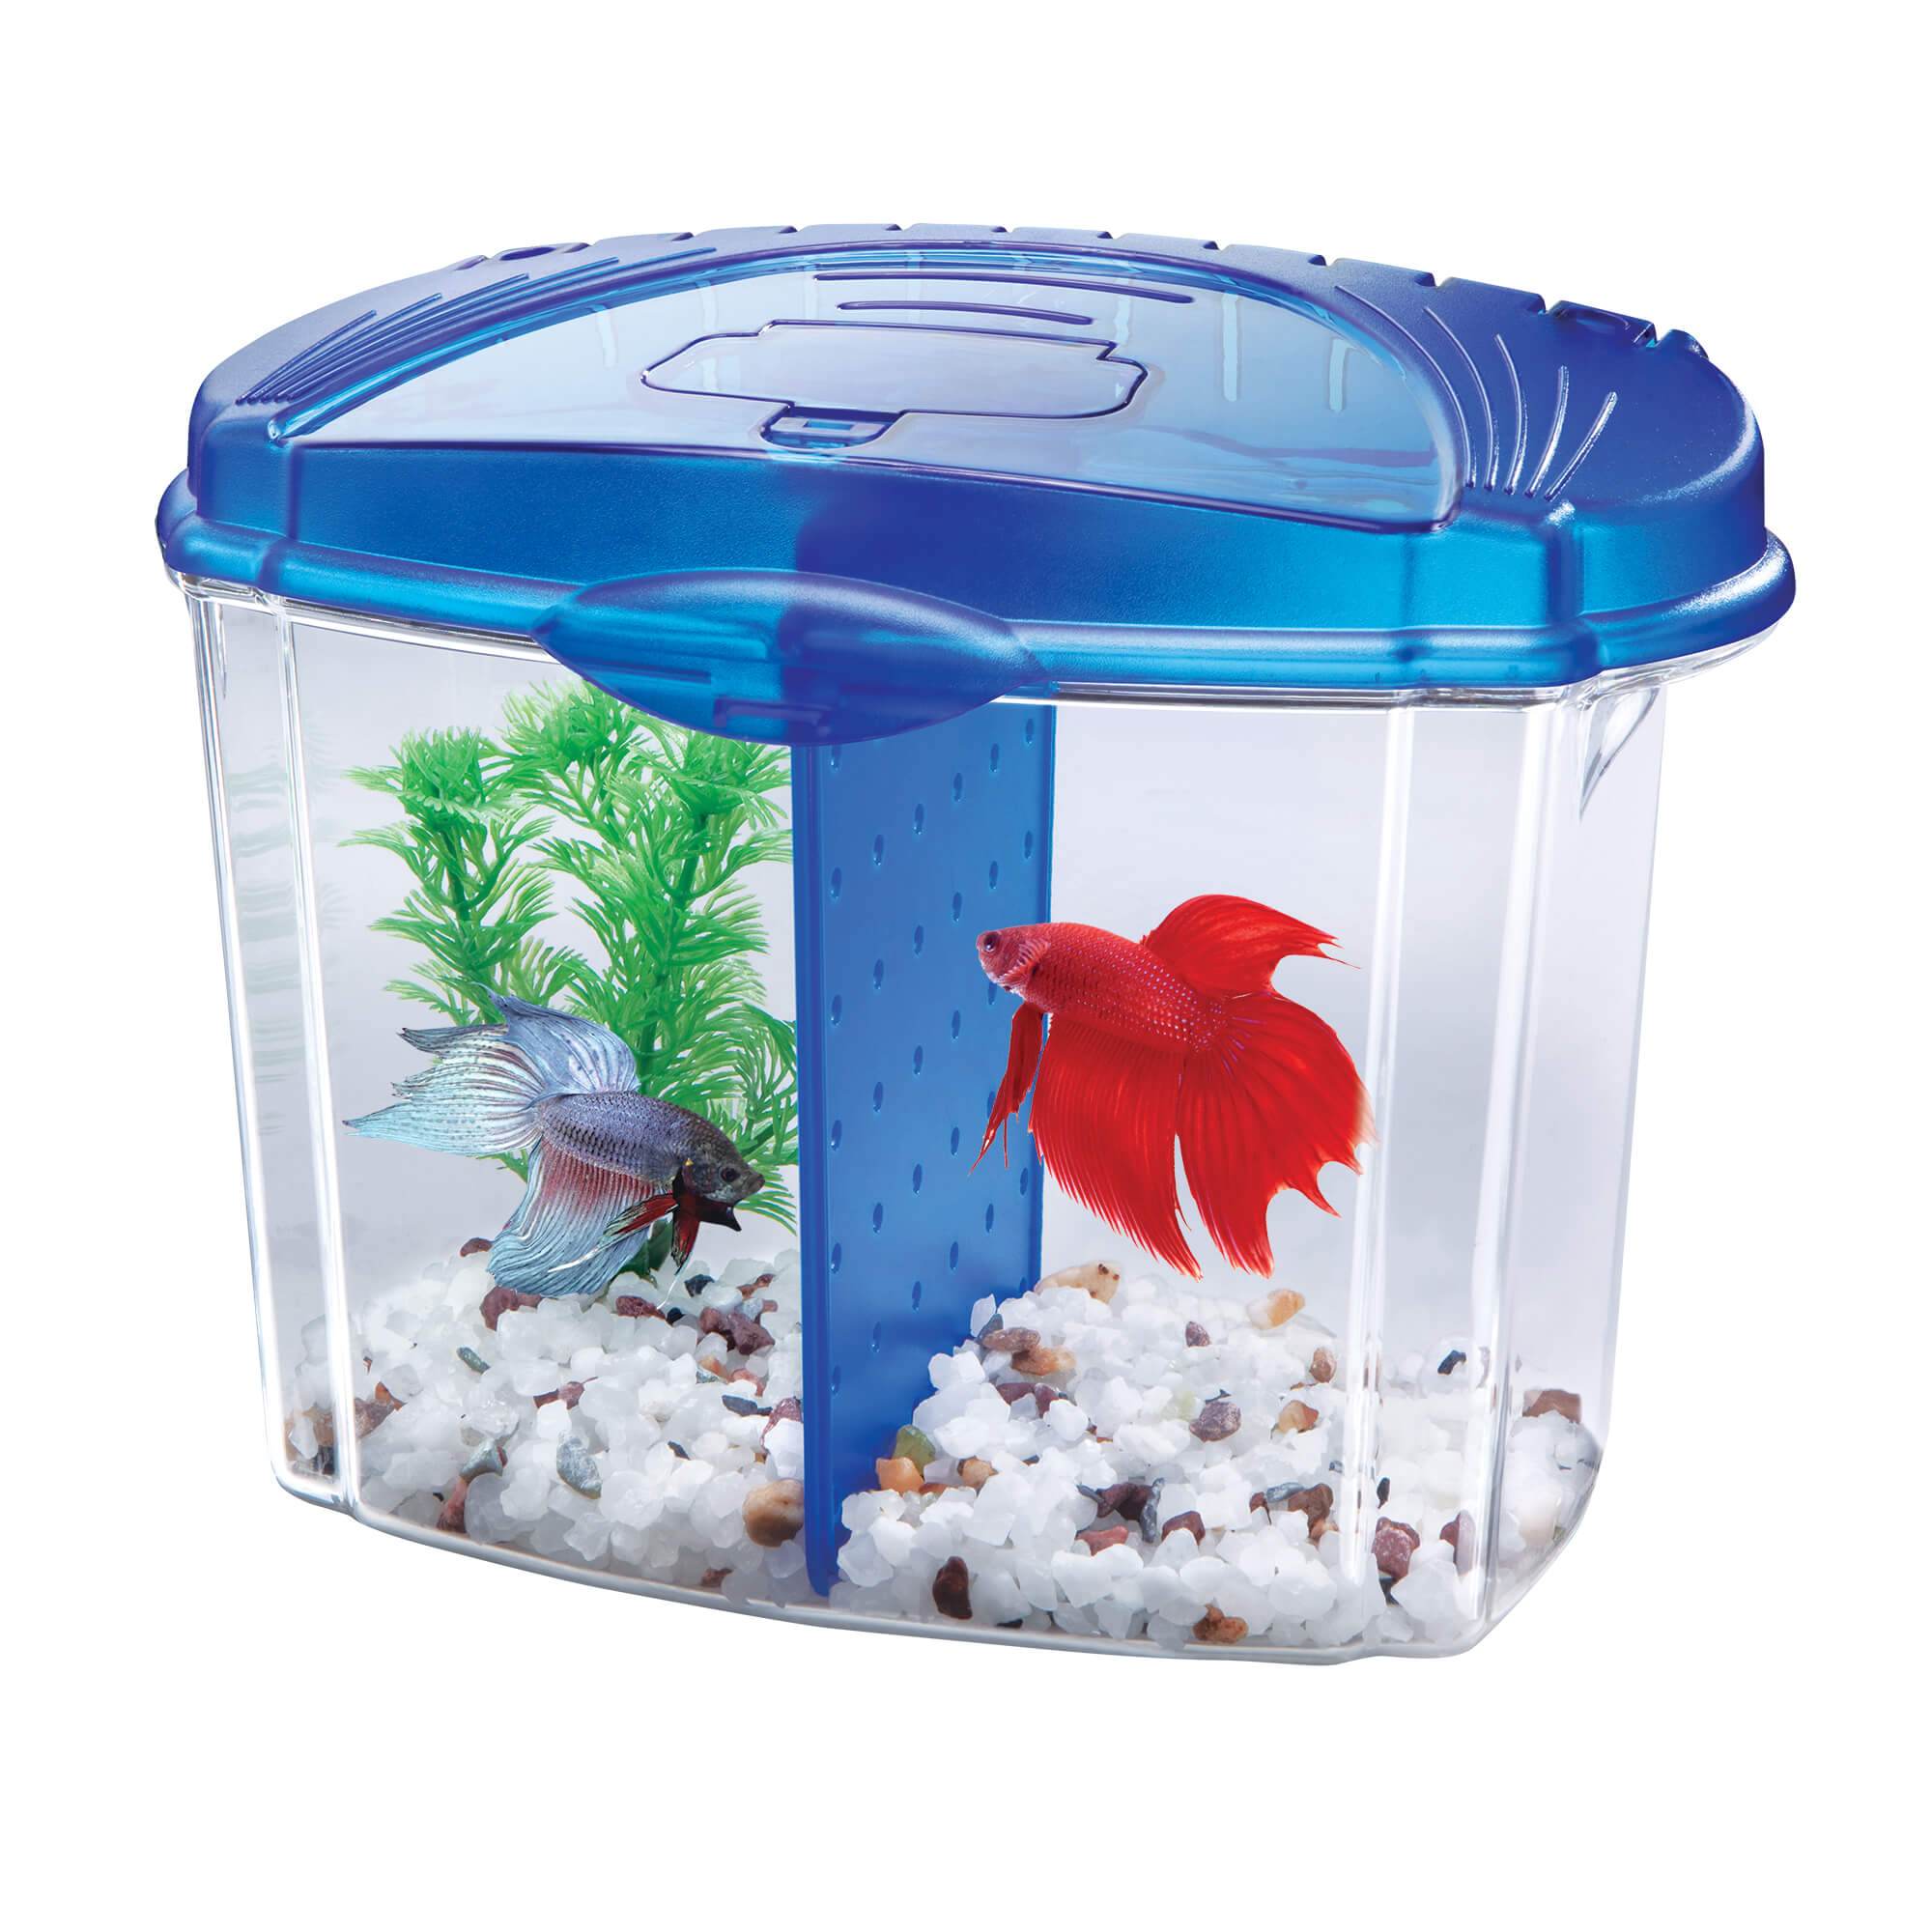 Aqueon Betta Bowl Aquarium Kit, 0.5 Gal by AQUEON PRODUCTS-SUPPLIES